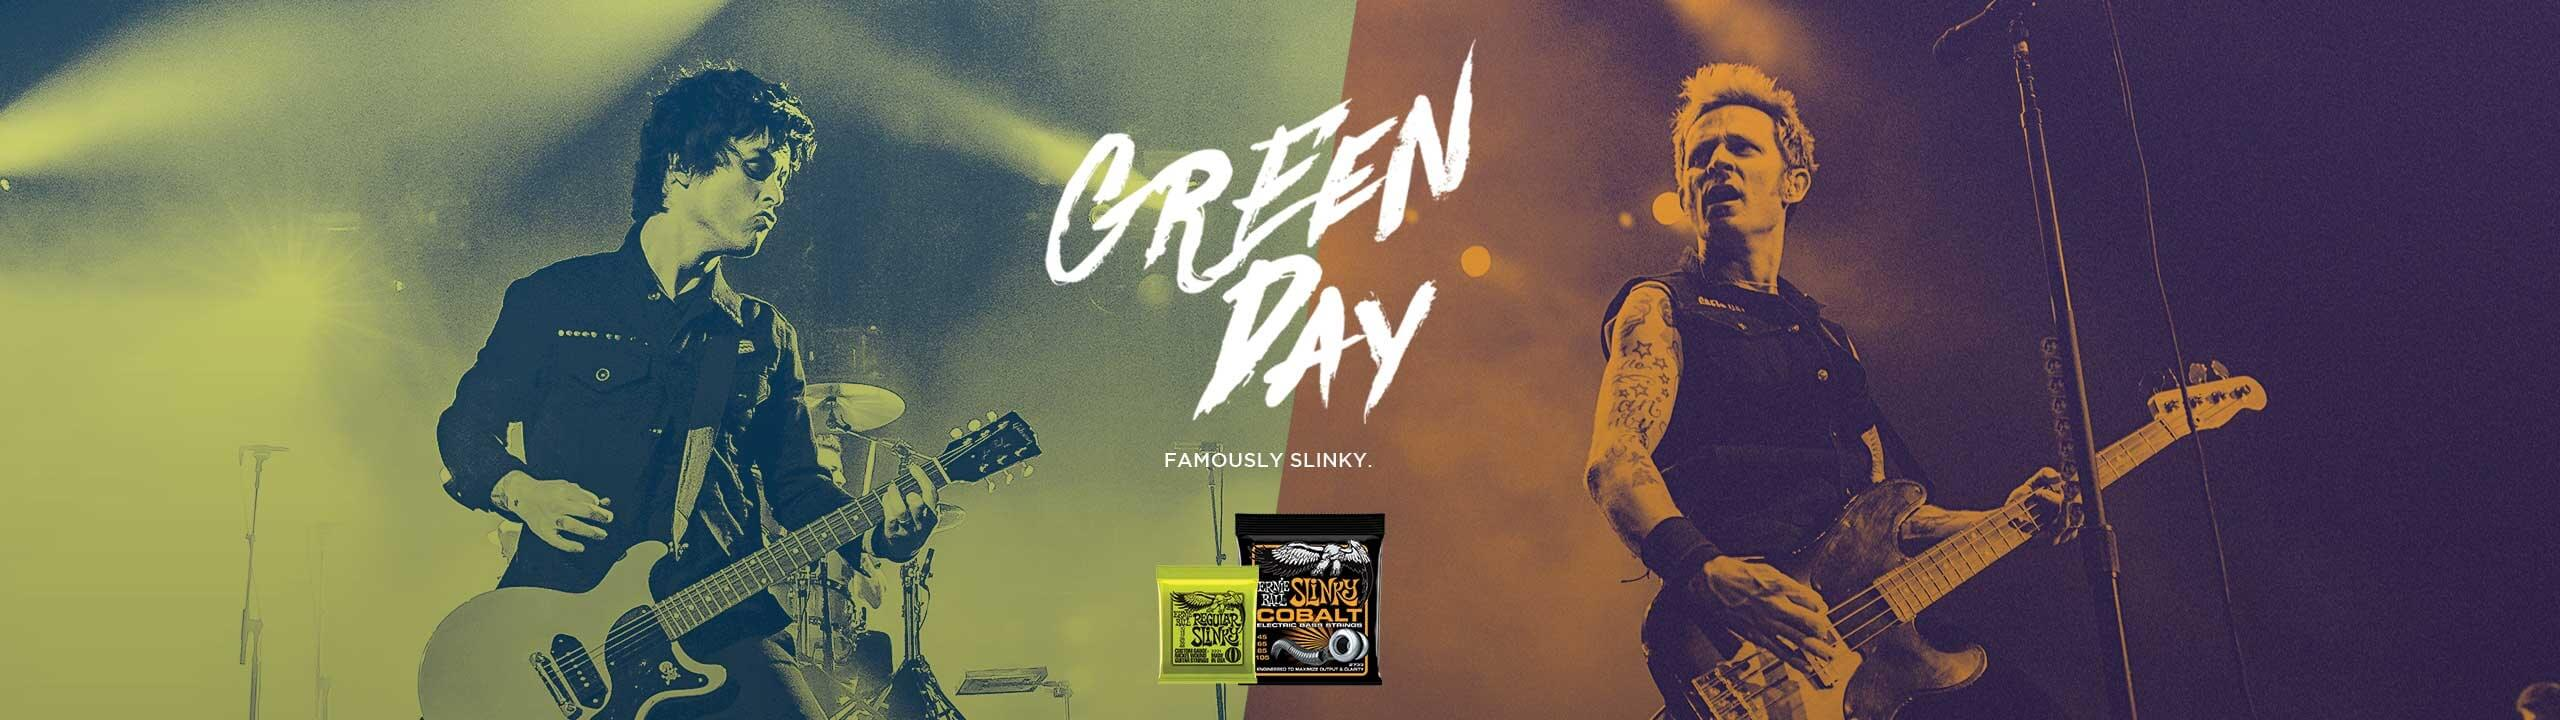 Green Day Collection